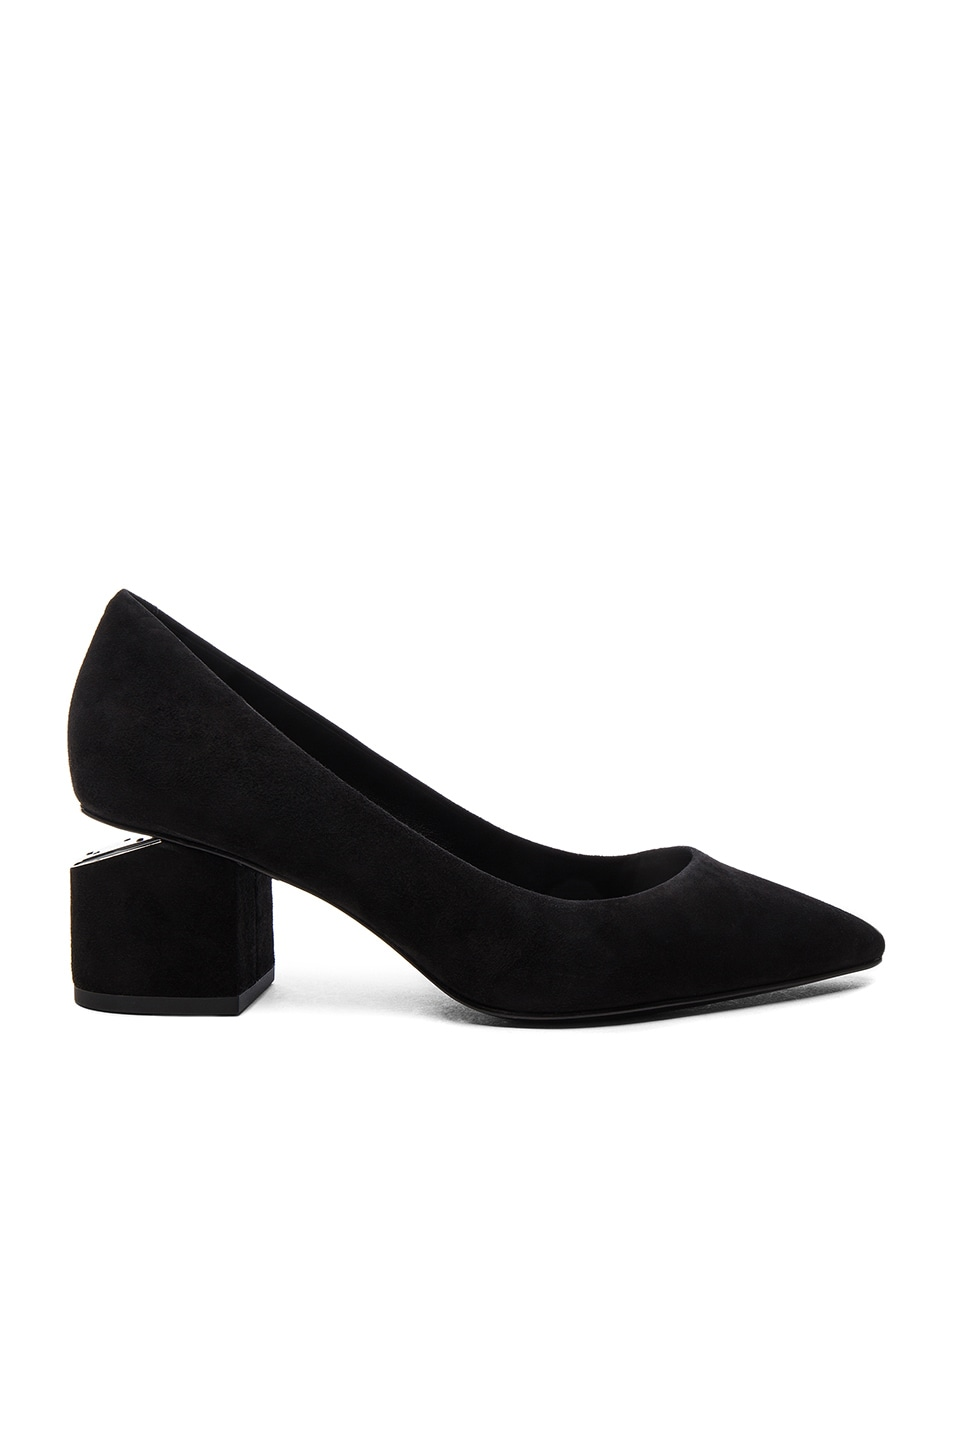 Image 1 of Alexander Wang Suede Simona Pumps in Black